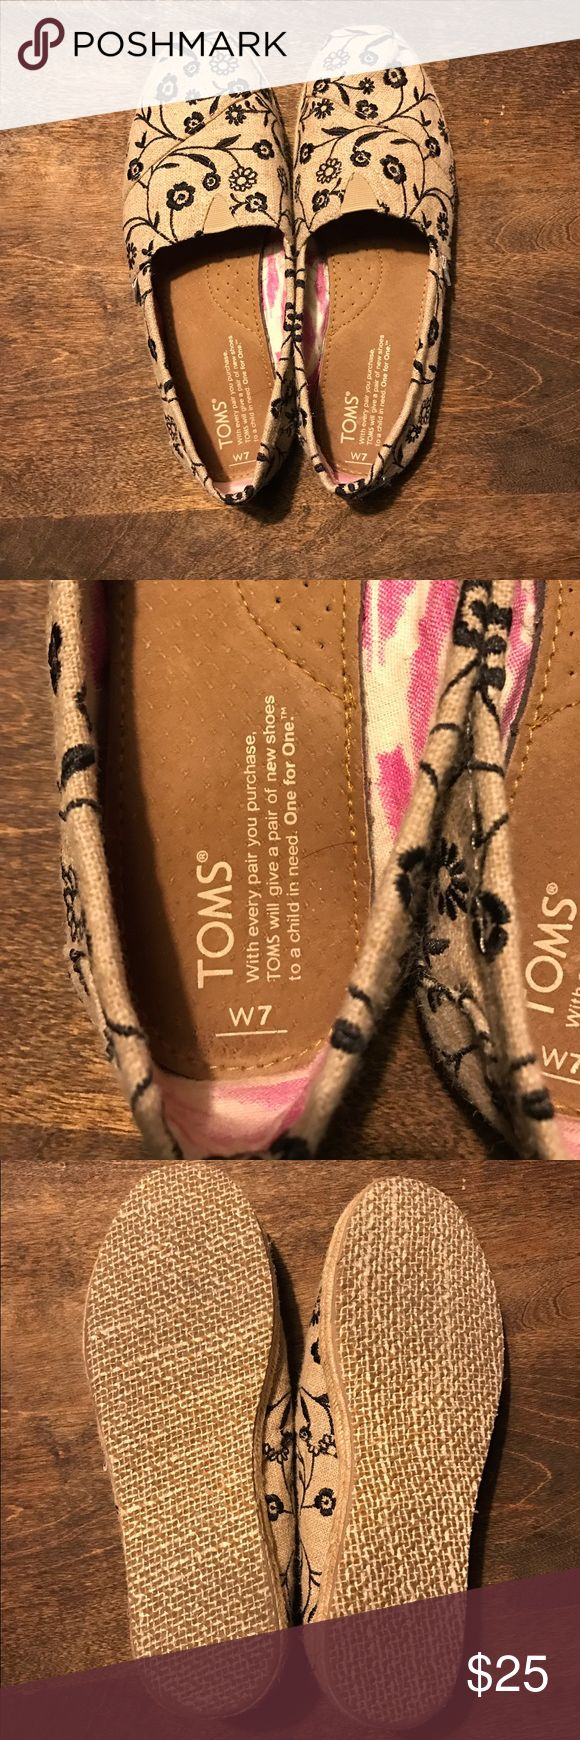 Floral & Burlap Toms Espadrilles! NWOB! NWOB Toms! Floral & Burlap! Perfect for spring! Open to all reasonable offers! TOMS Shoes Flats & Loafers